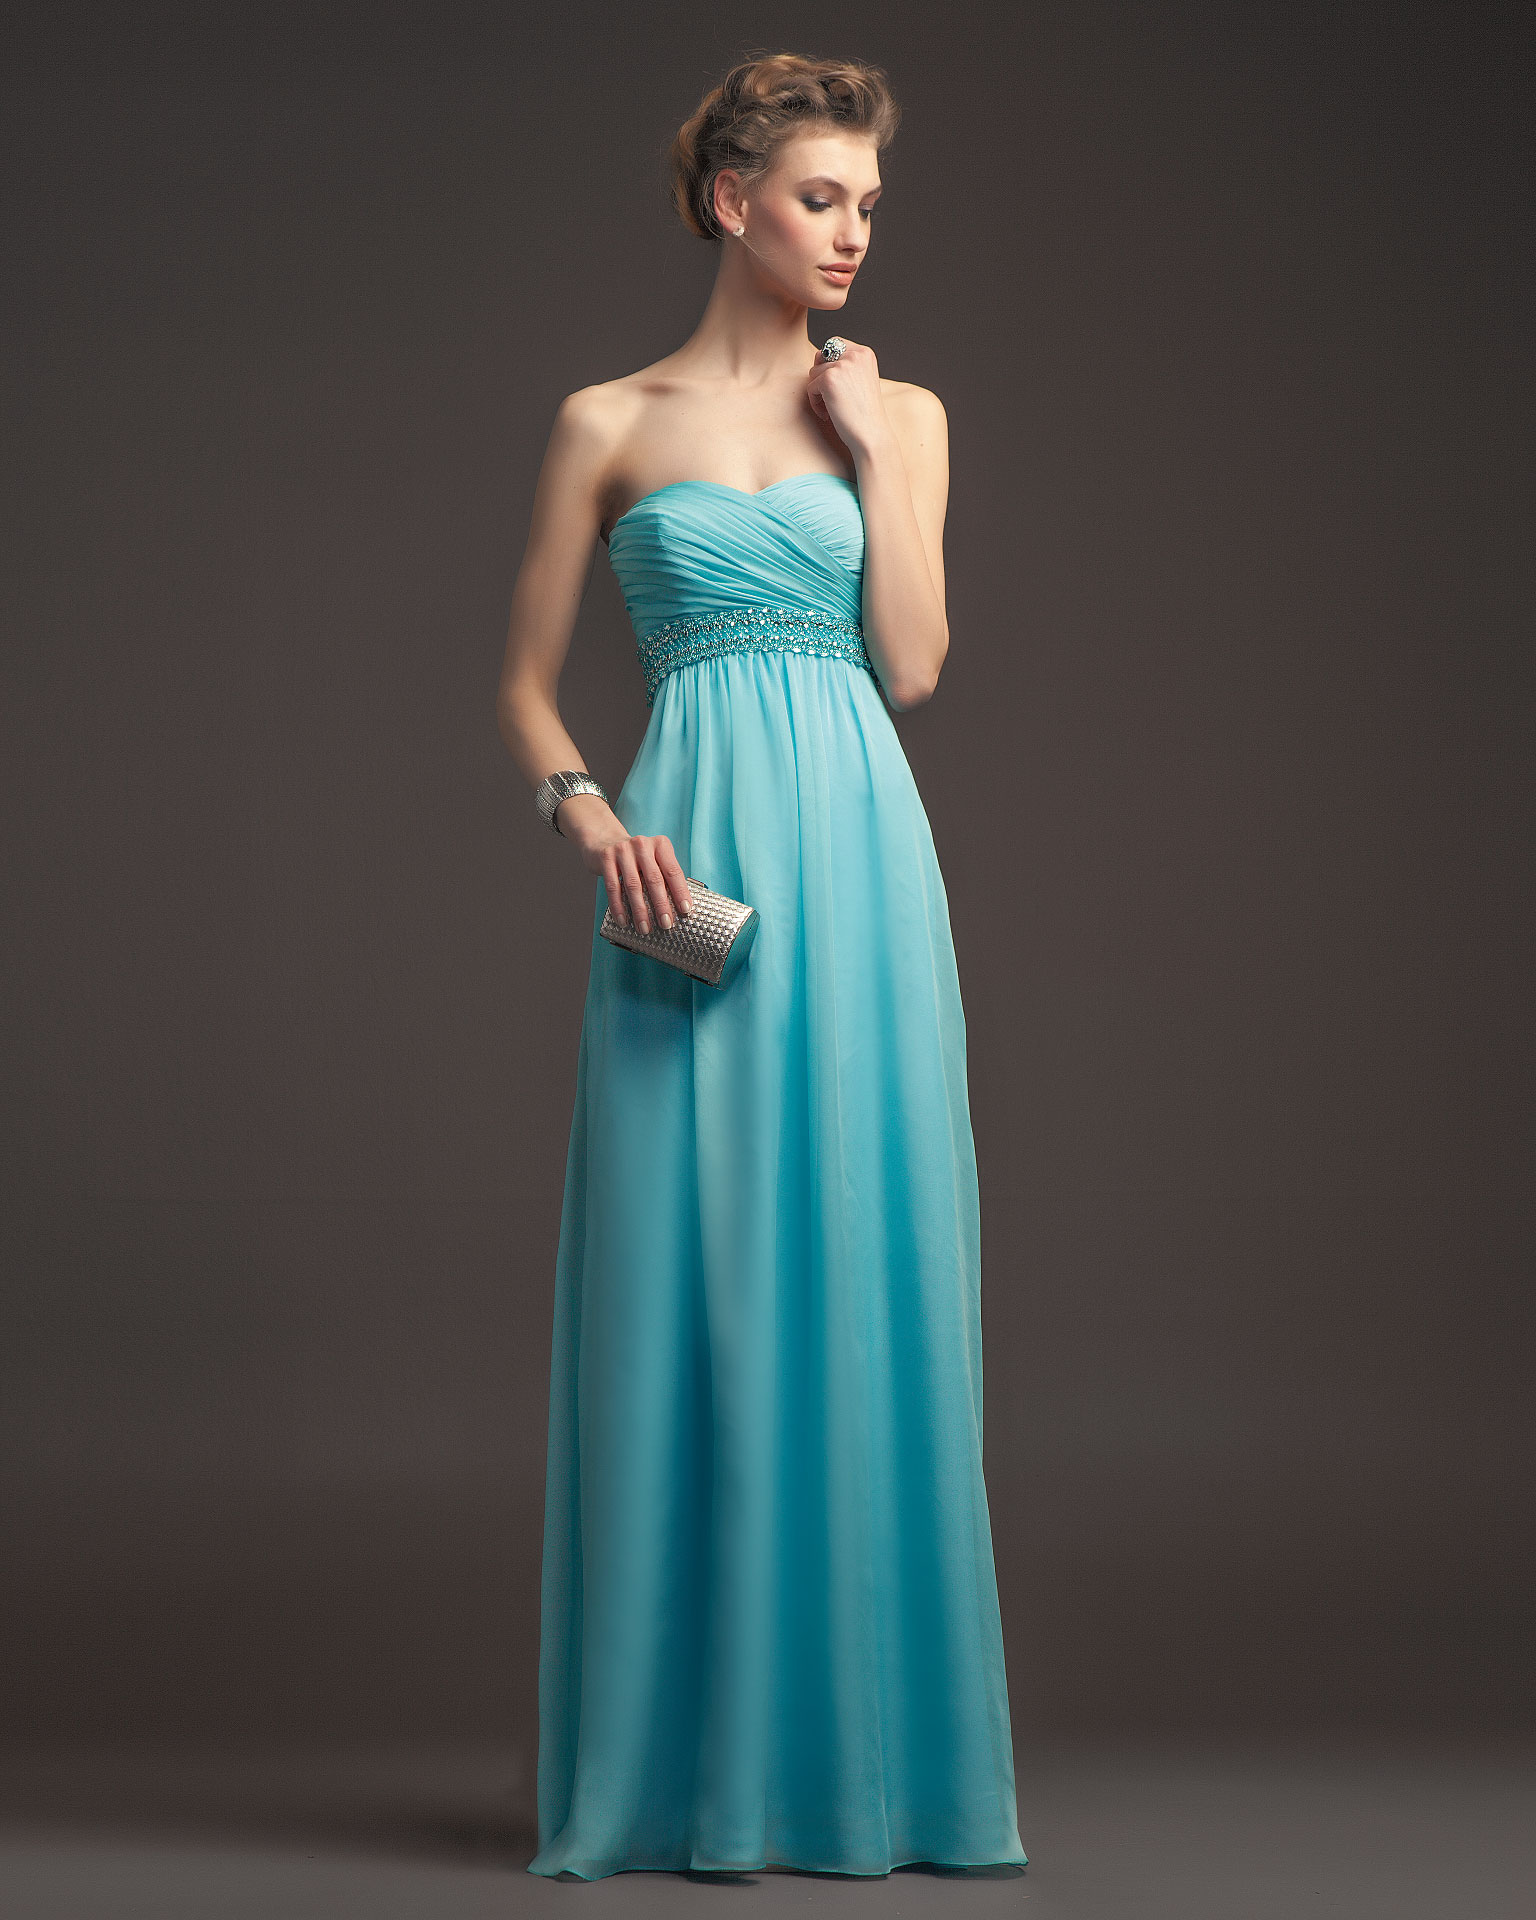 Charming Sheath/Column Strapless Beading&Crystal Ruching Floor-length Chiffon Prom Dresses